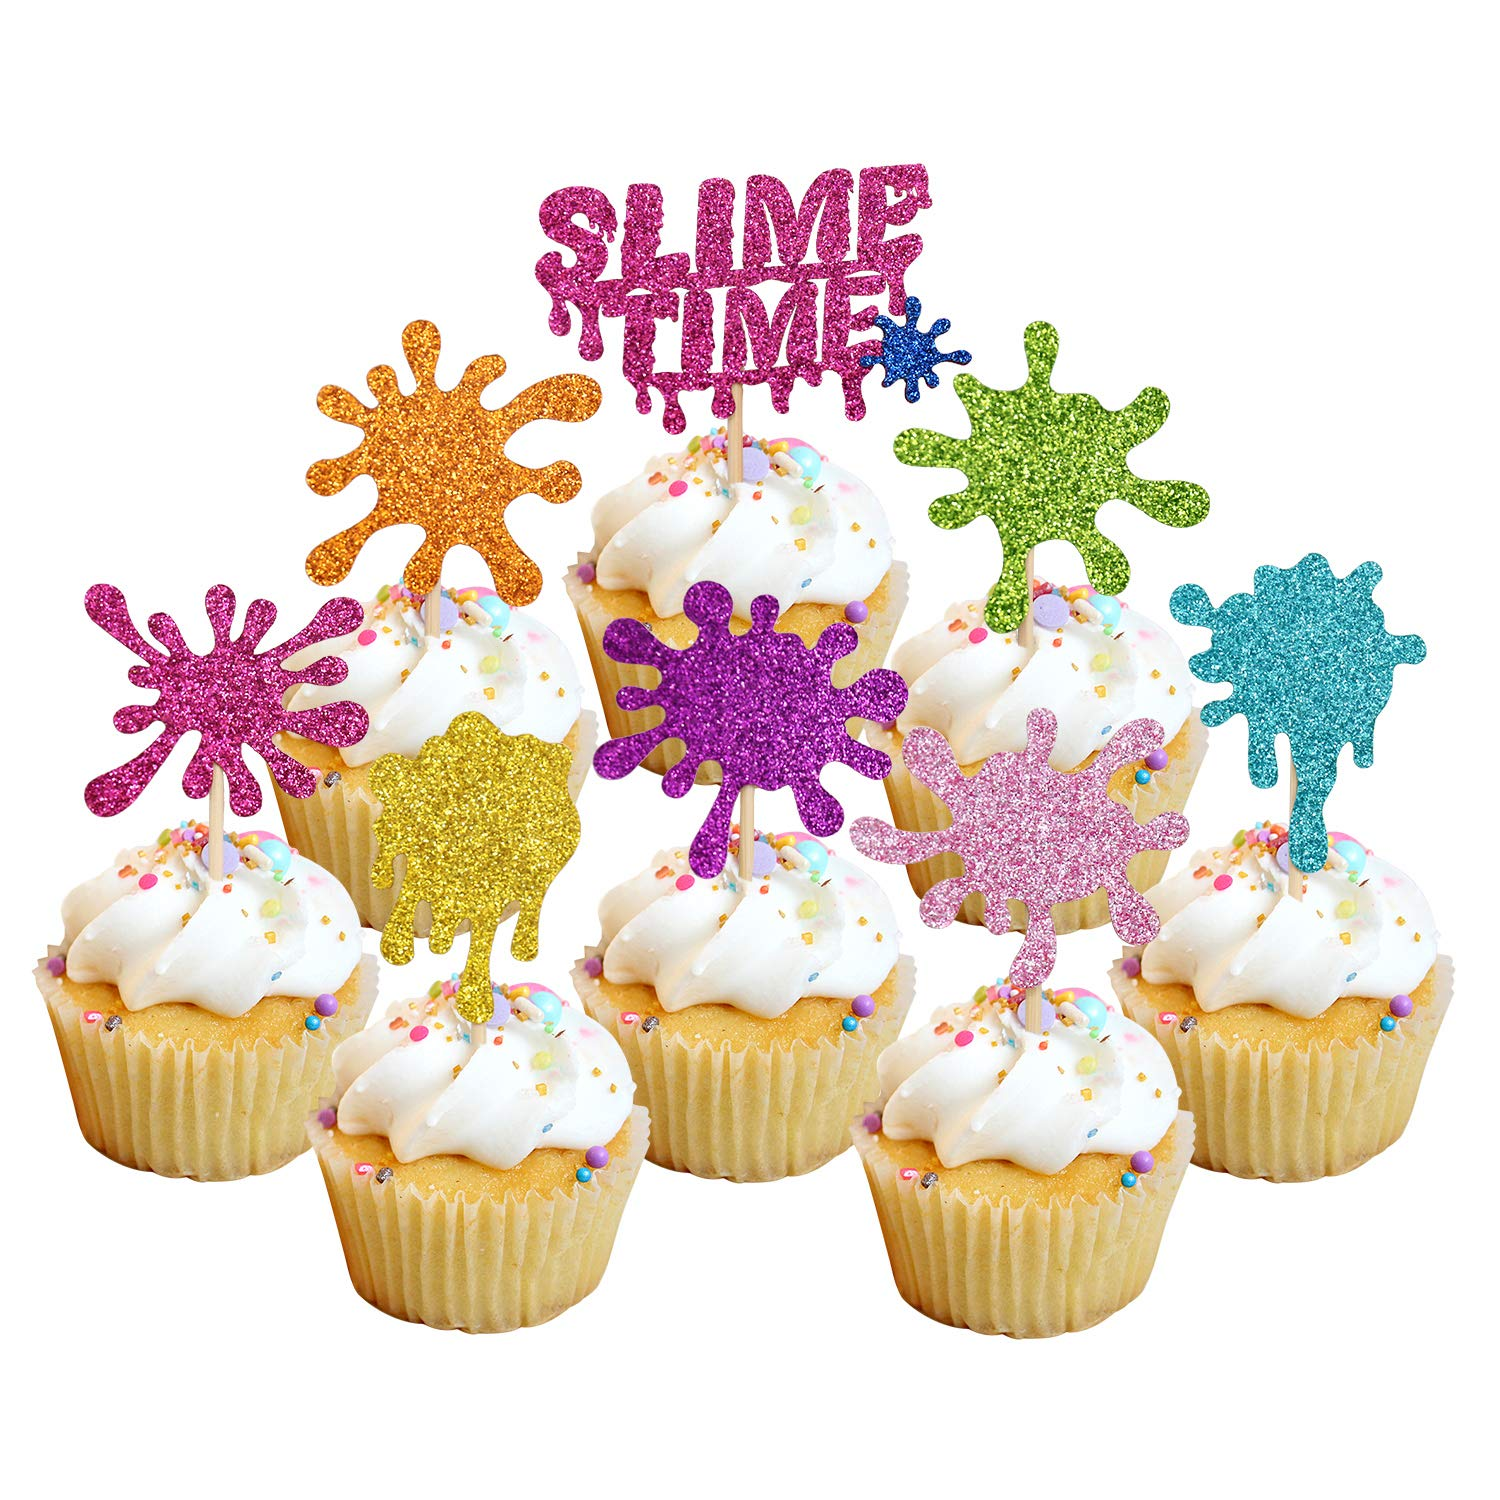 24pcs Glitter Slime Cupcake Toppers for Slime Birthday Party Baby Shower Painting Party Art Themed Party Decoration Supplies by Faisichocalato